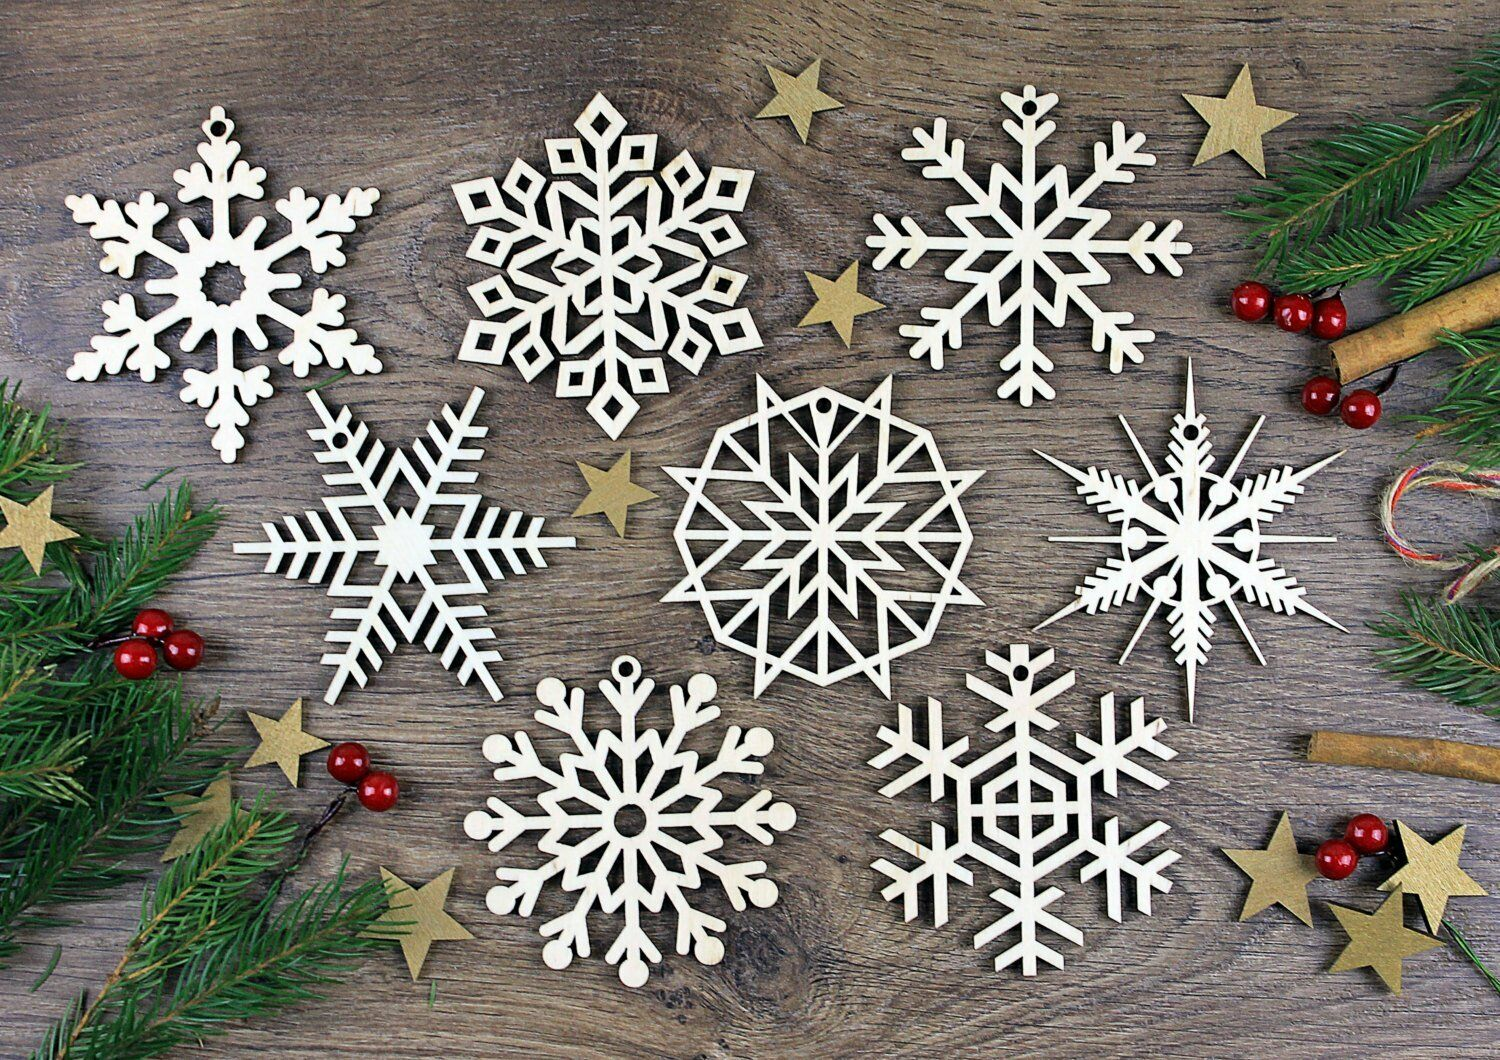 Laser Cut Christmas Ornaments Custom Name Snowflake Ornament 5 Inches Wood Christmas Decoration Set of Personalized Wooden Snowflake Ornaments